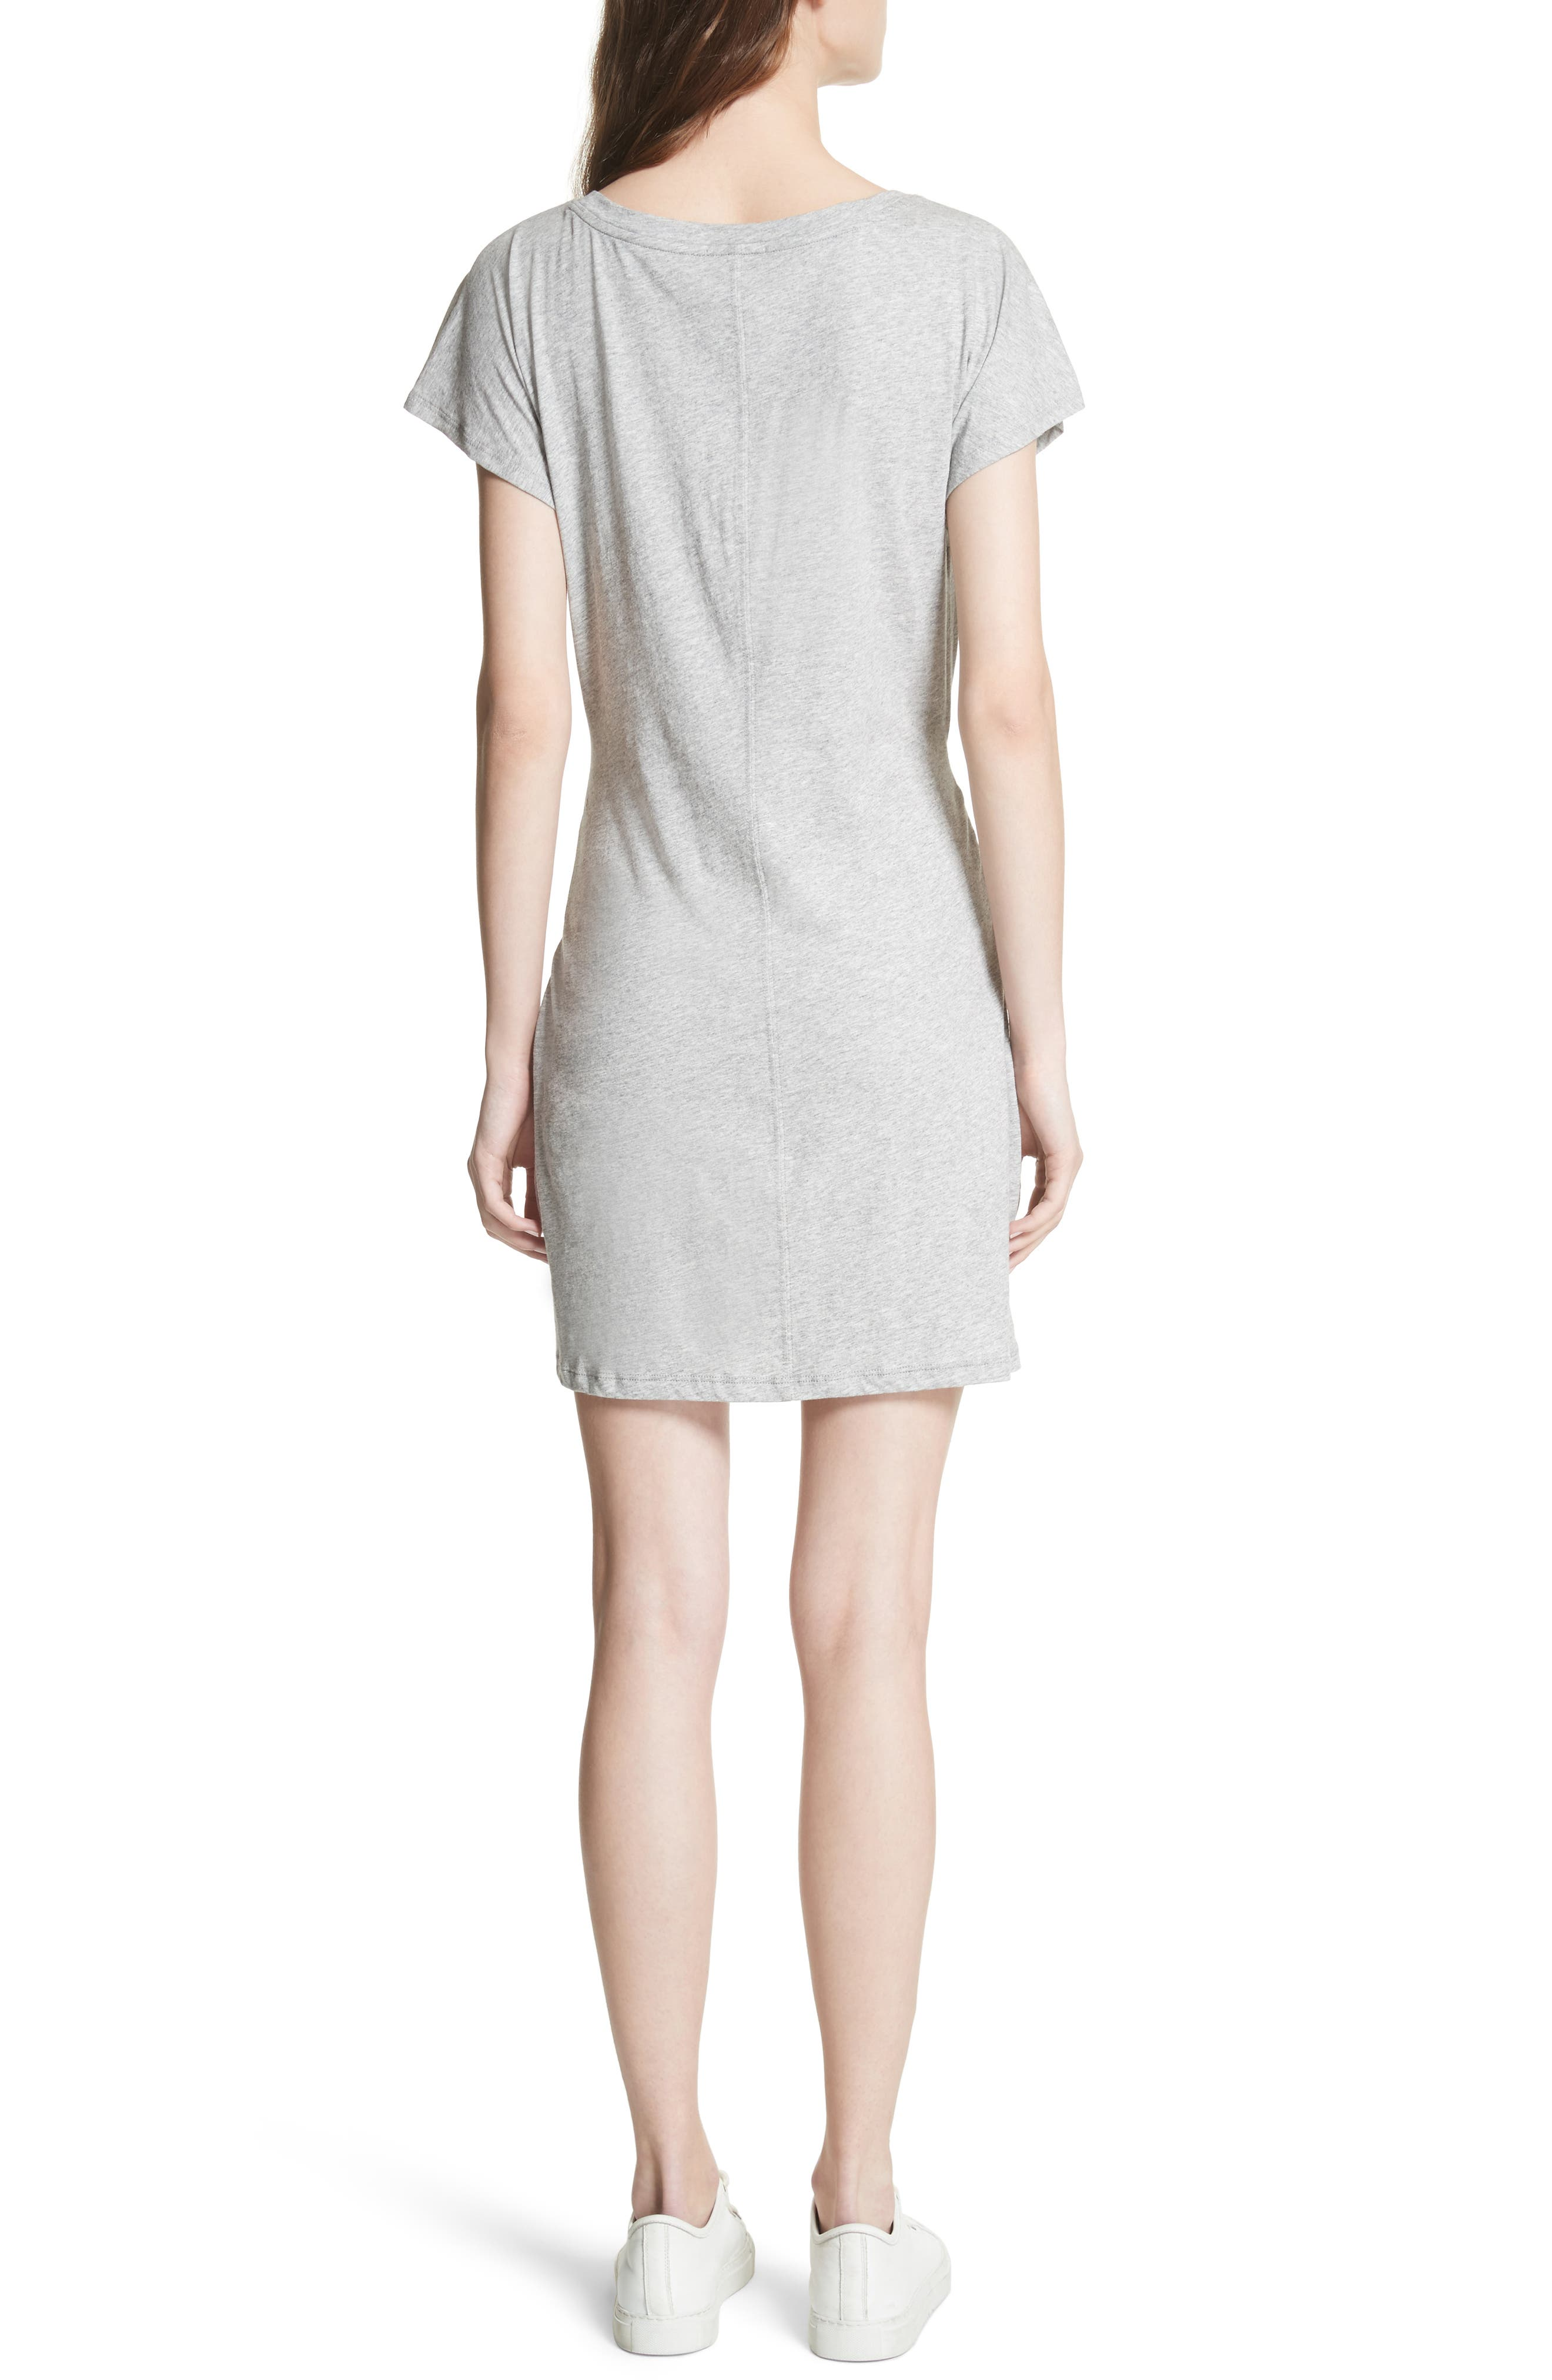 Alyra Tie Waist Cotton T-Shirt Dress,                             Alternate thumbnail 2, color,                             Heather Grey